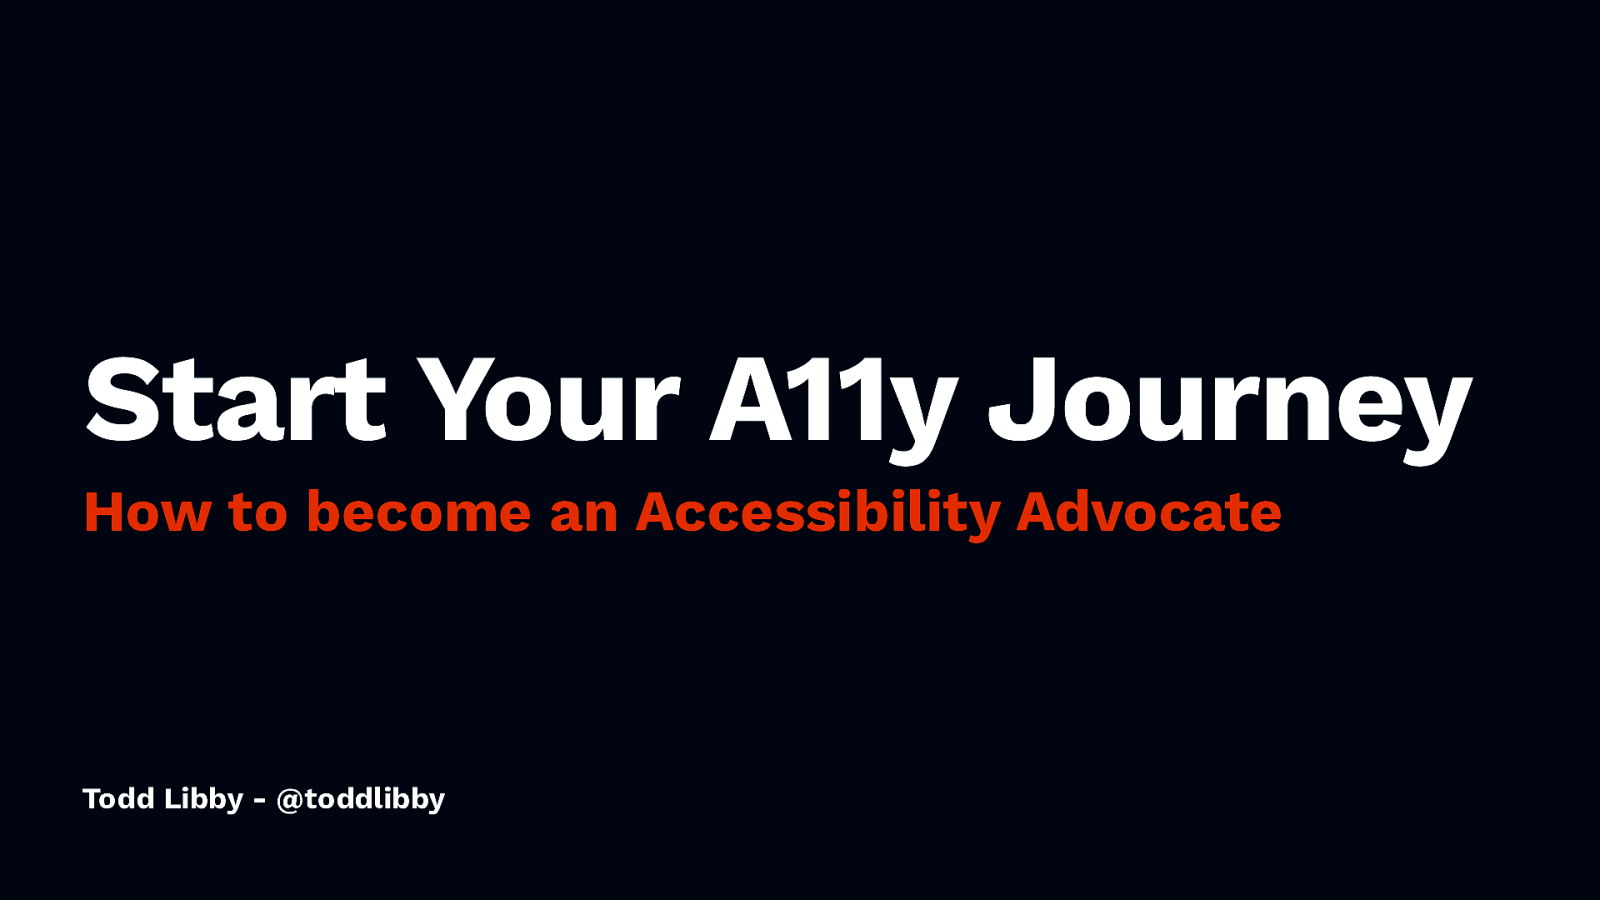 Start your A11y Journey: How to Become an Accessibility Advocate